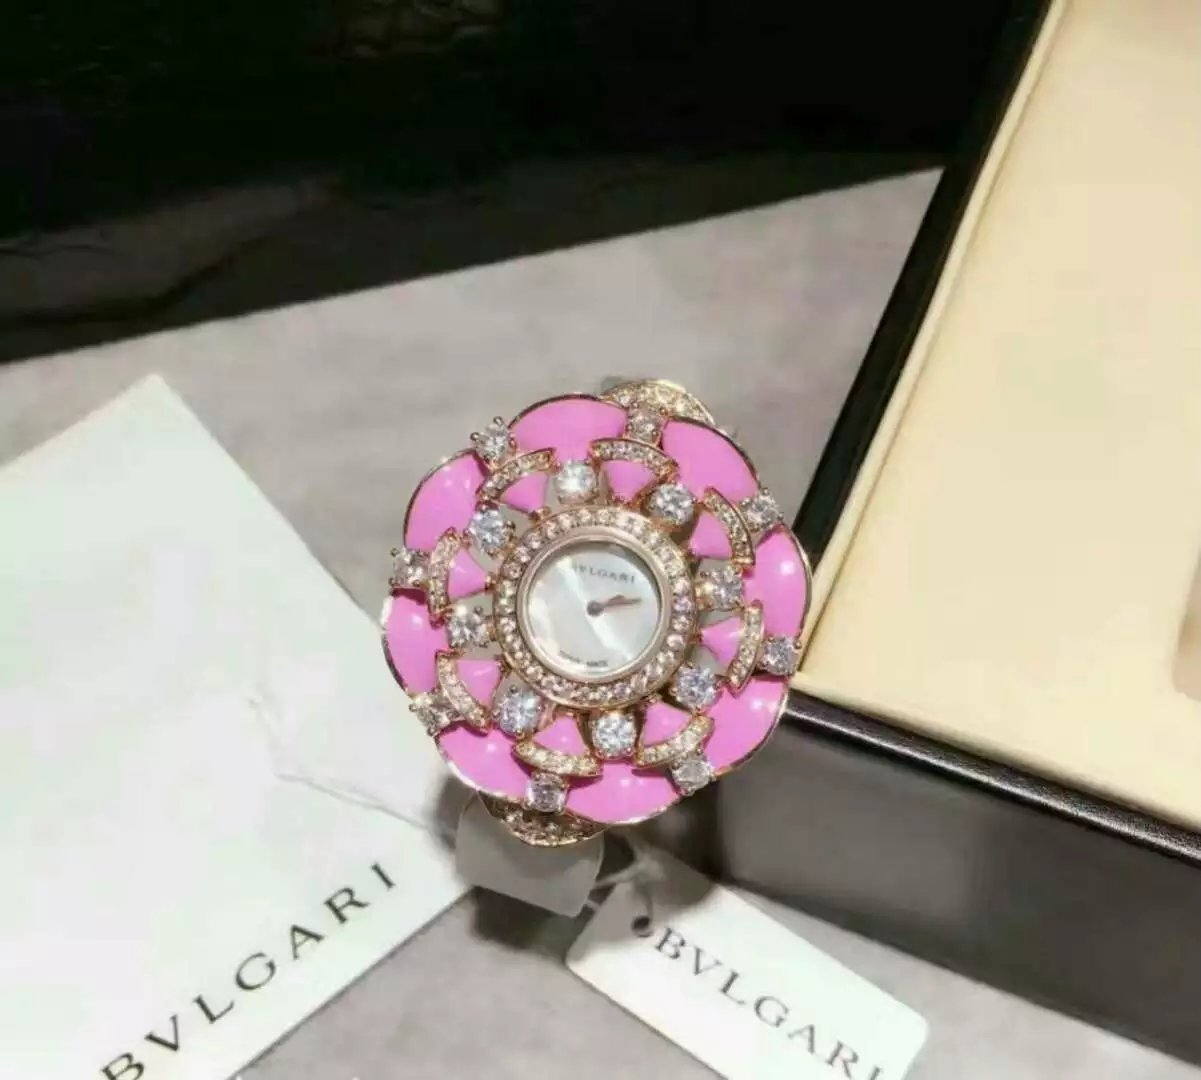 Bvlgari Watch 171